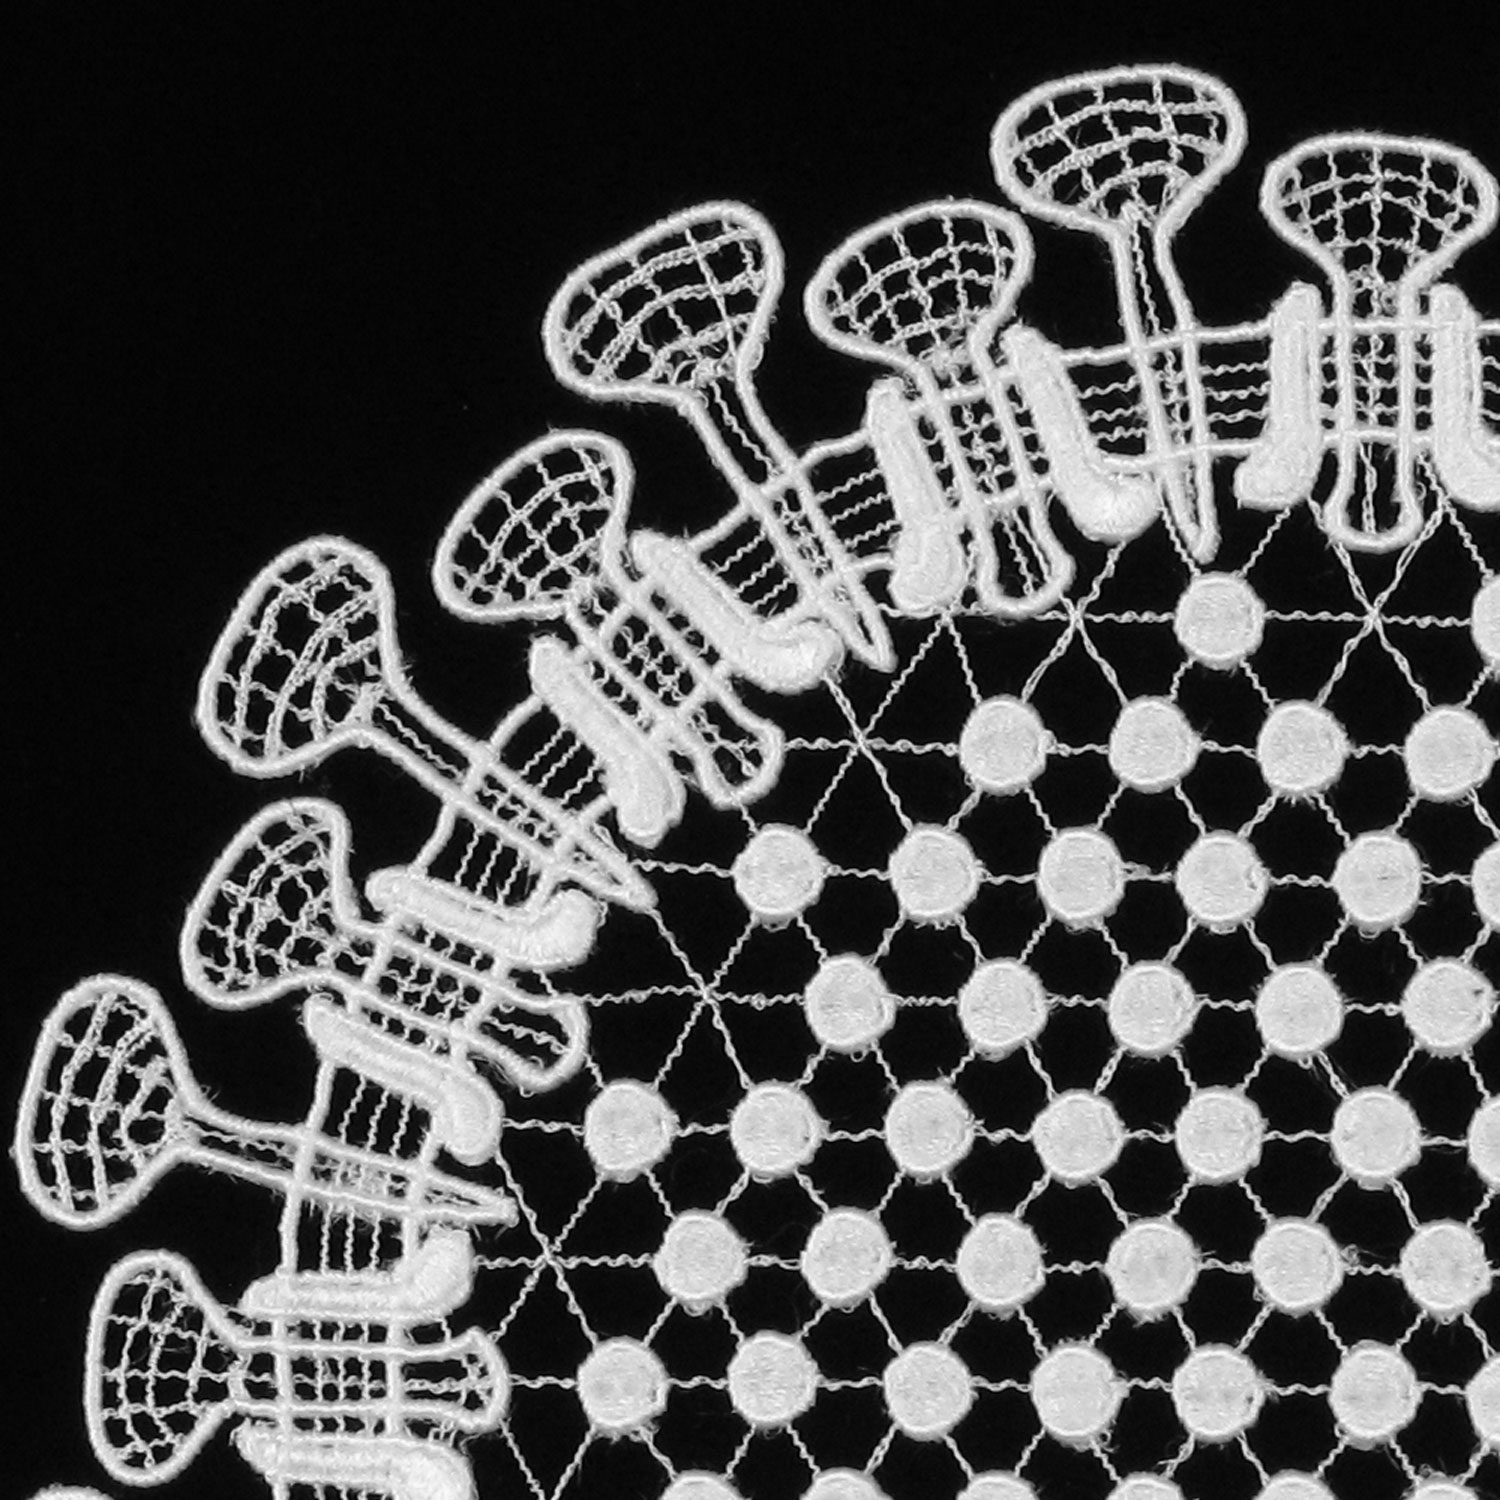 image of a black background with white crocheted design